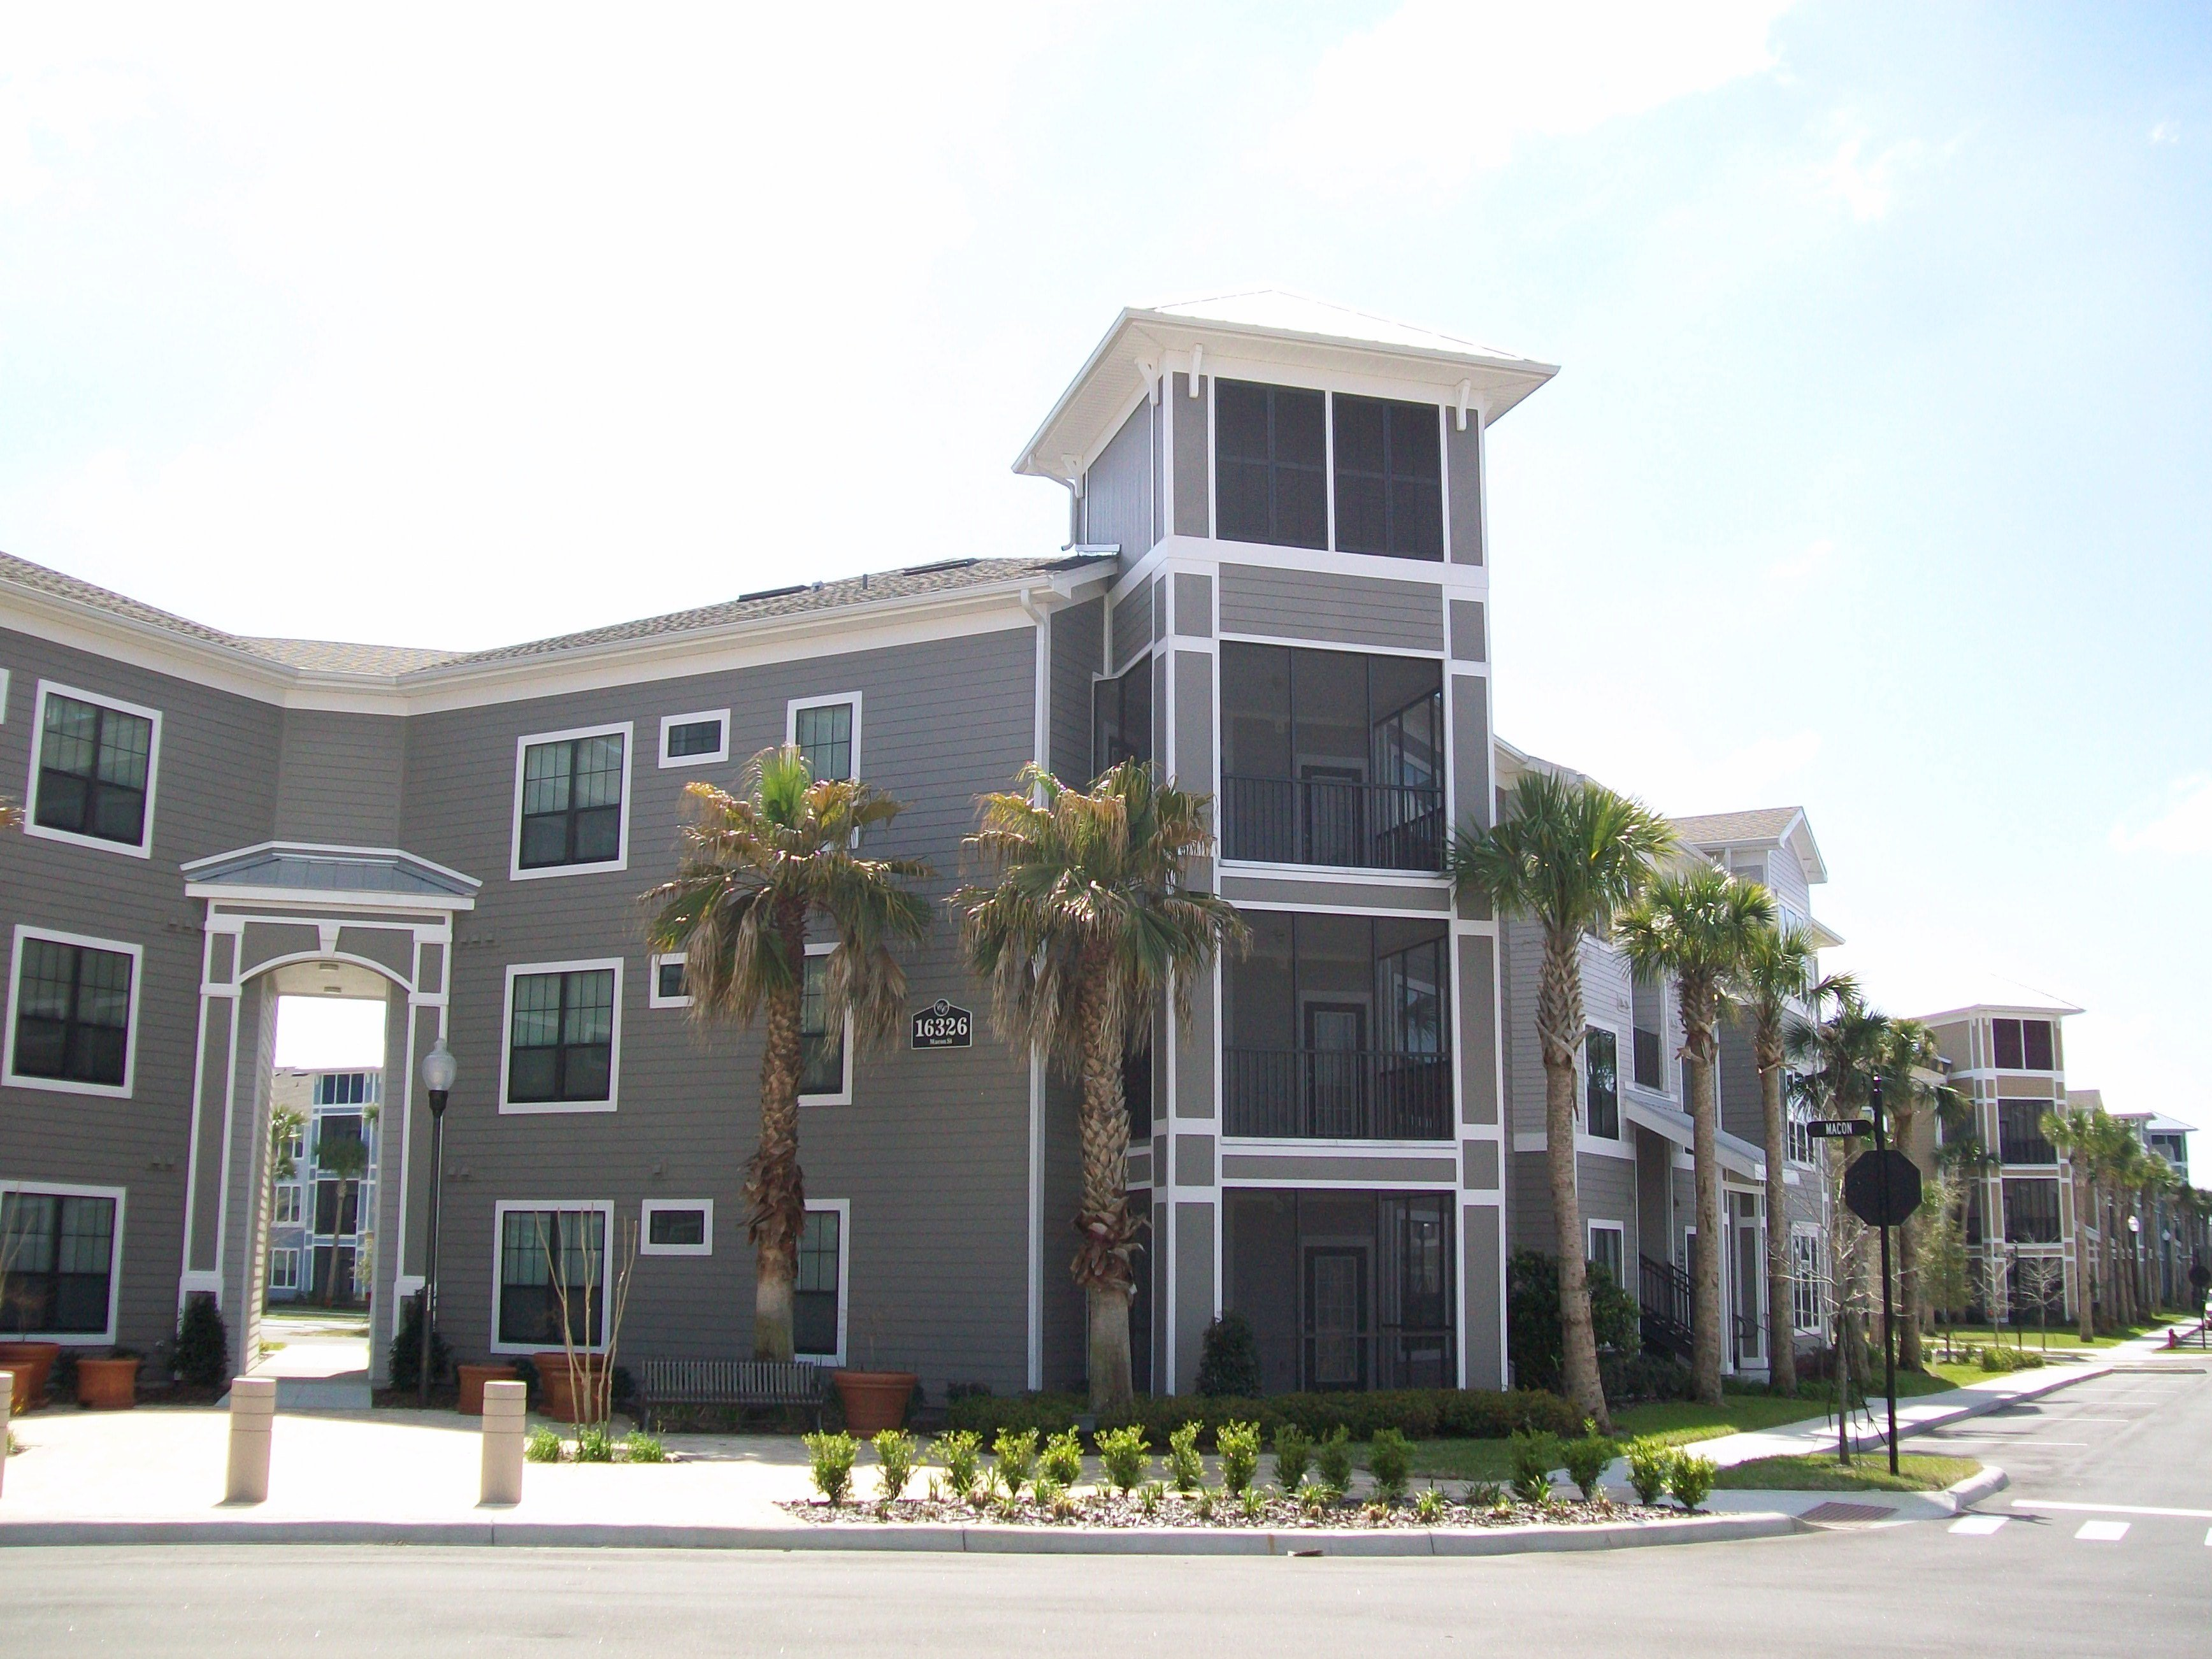 Rent, Apartments for Rent in Clermont FL